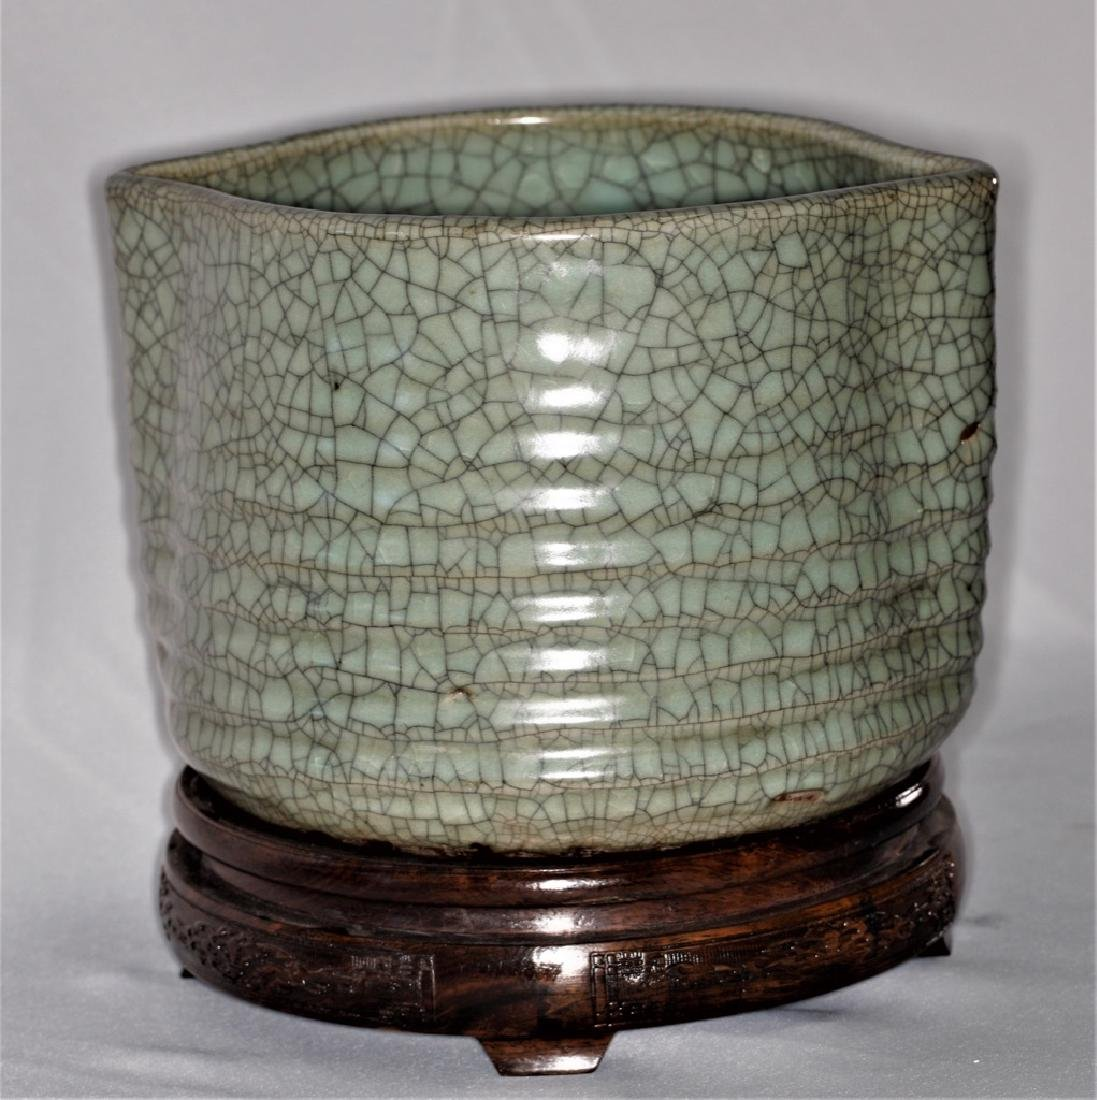 Chinese Song Dynasty Guan Type Crackle Glazed Ceramic